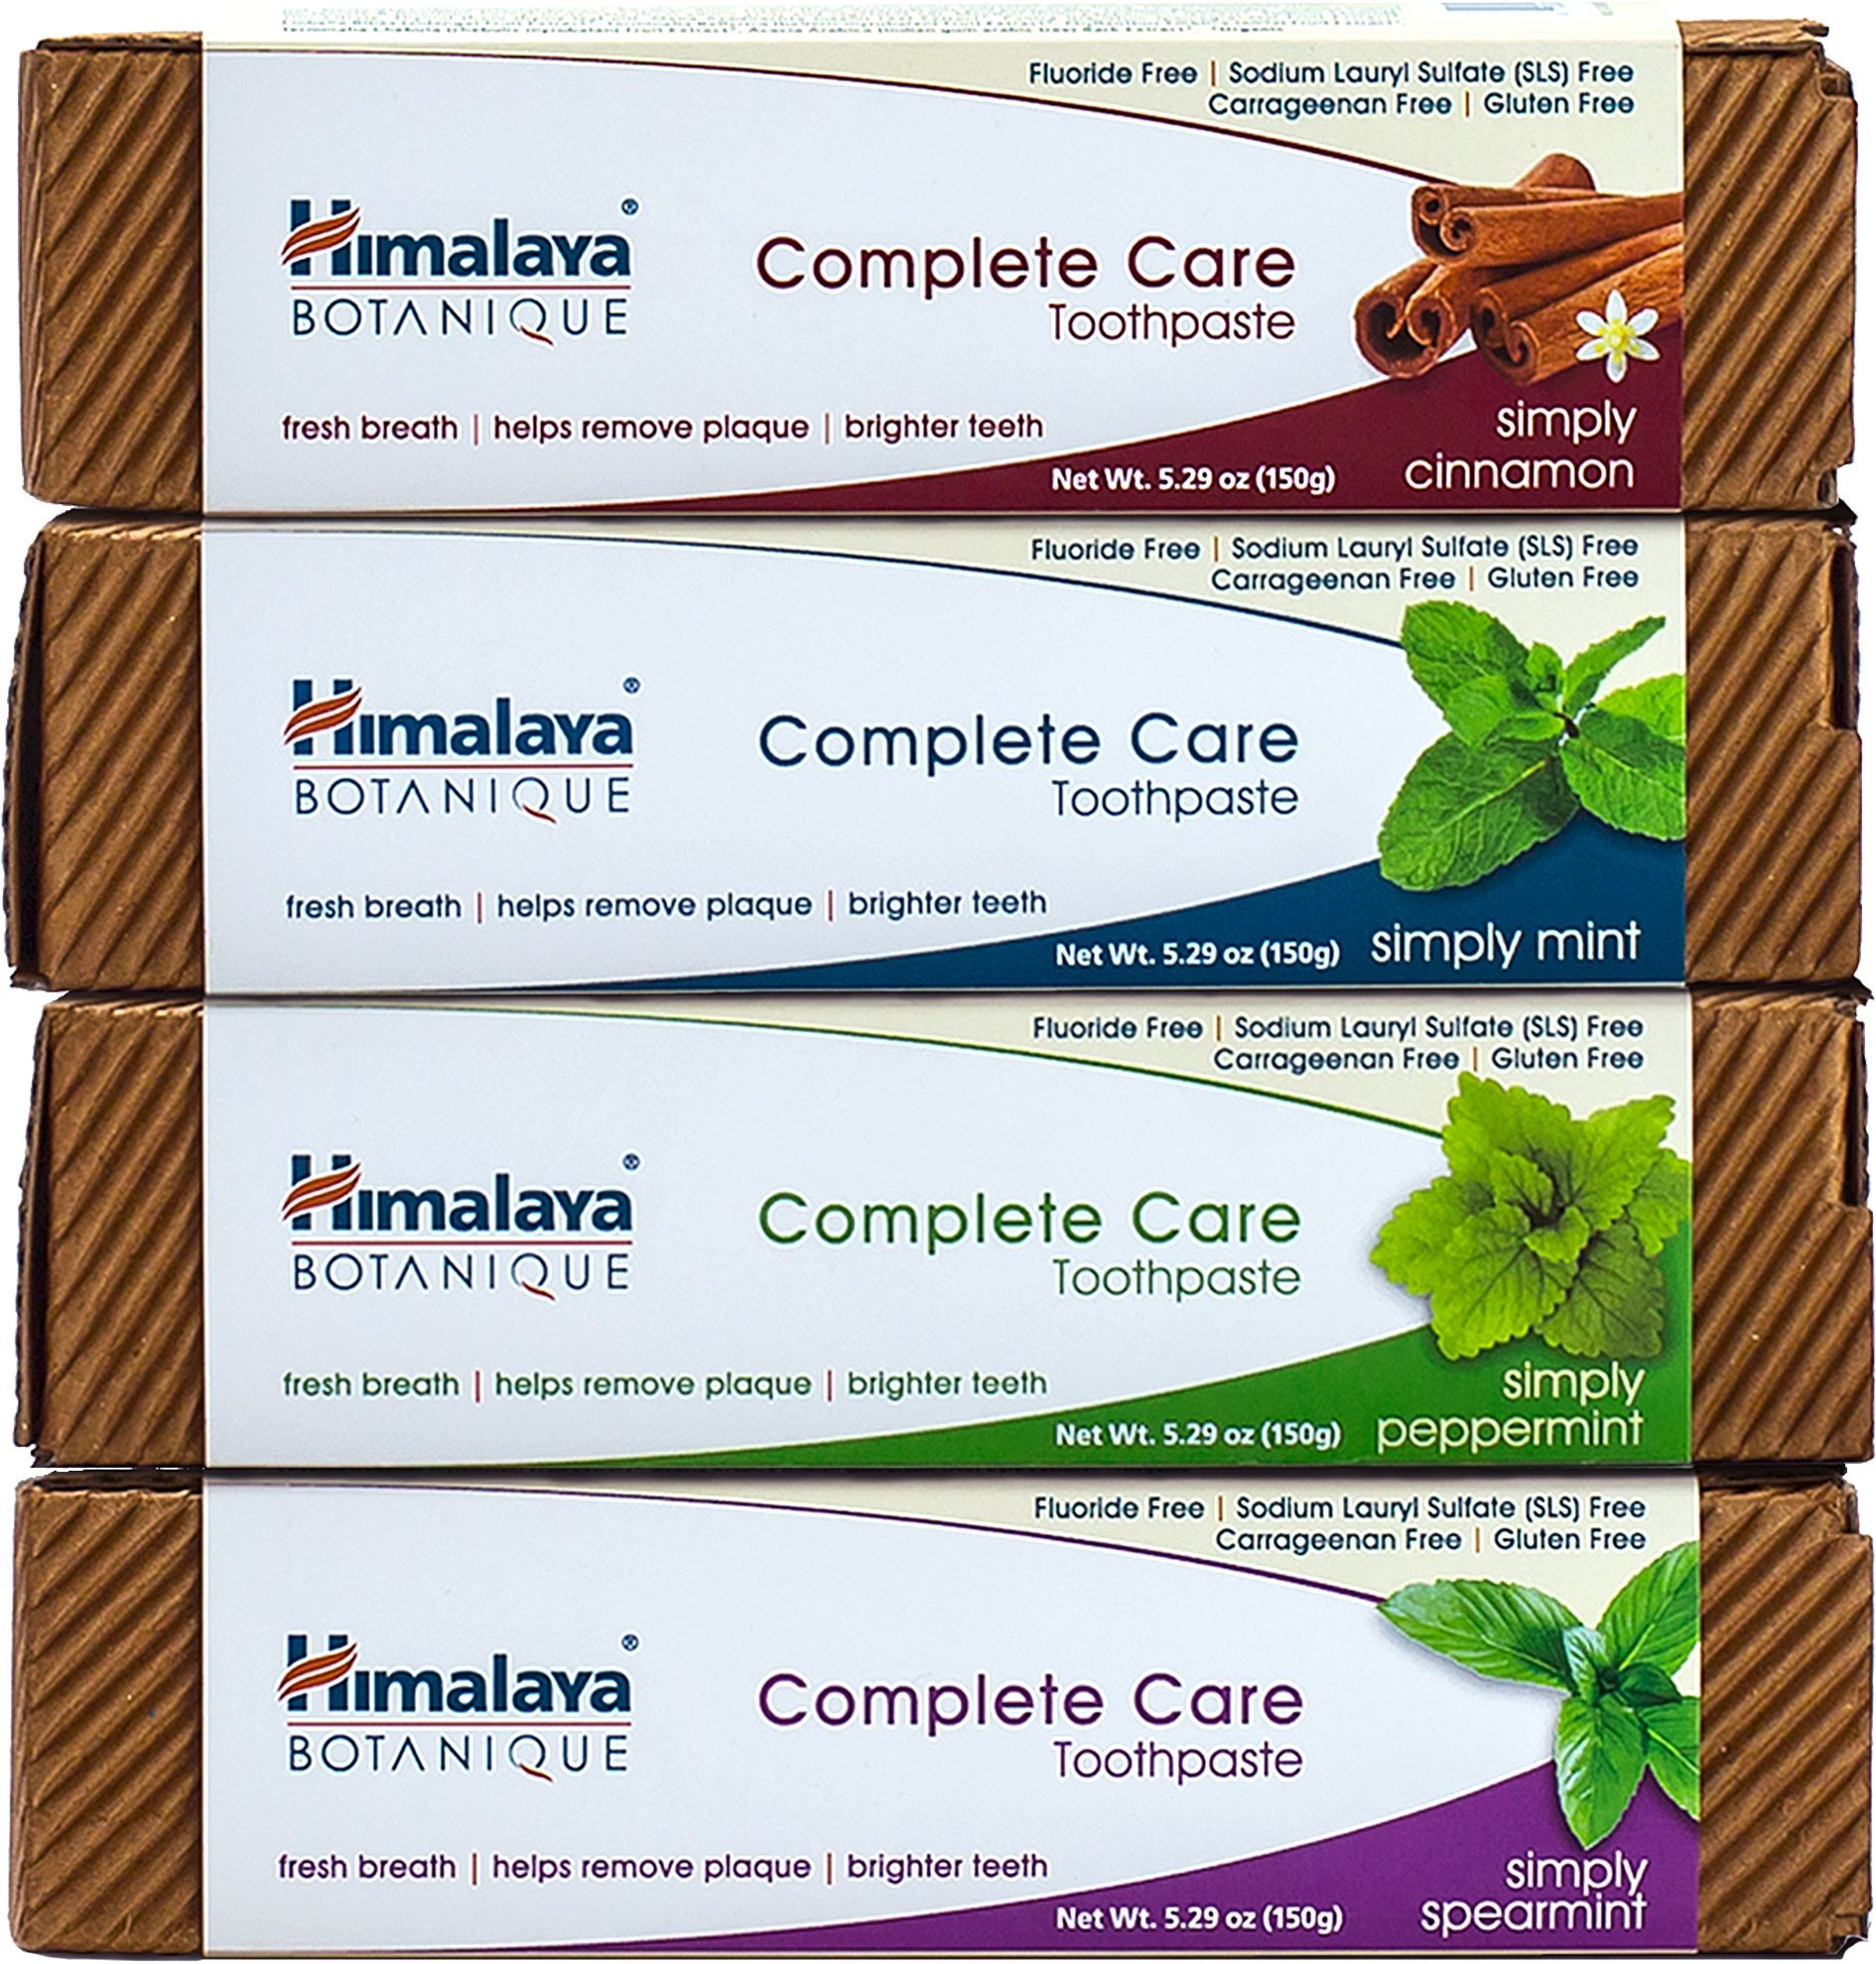 Himalaya Complete Care Toothpaste Variety Pack, Mint, Cinnamon, Peppermint and Spearmint, Natural, Fluoride-Free, SLS Free, Carrageenan-Free & Gluten-Free, 5.29 oz (150 g) each, 4 PACK